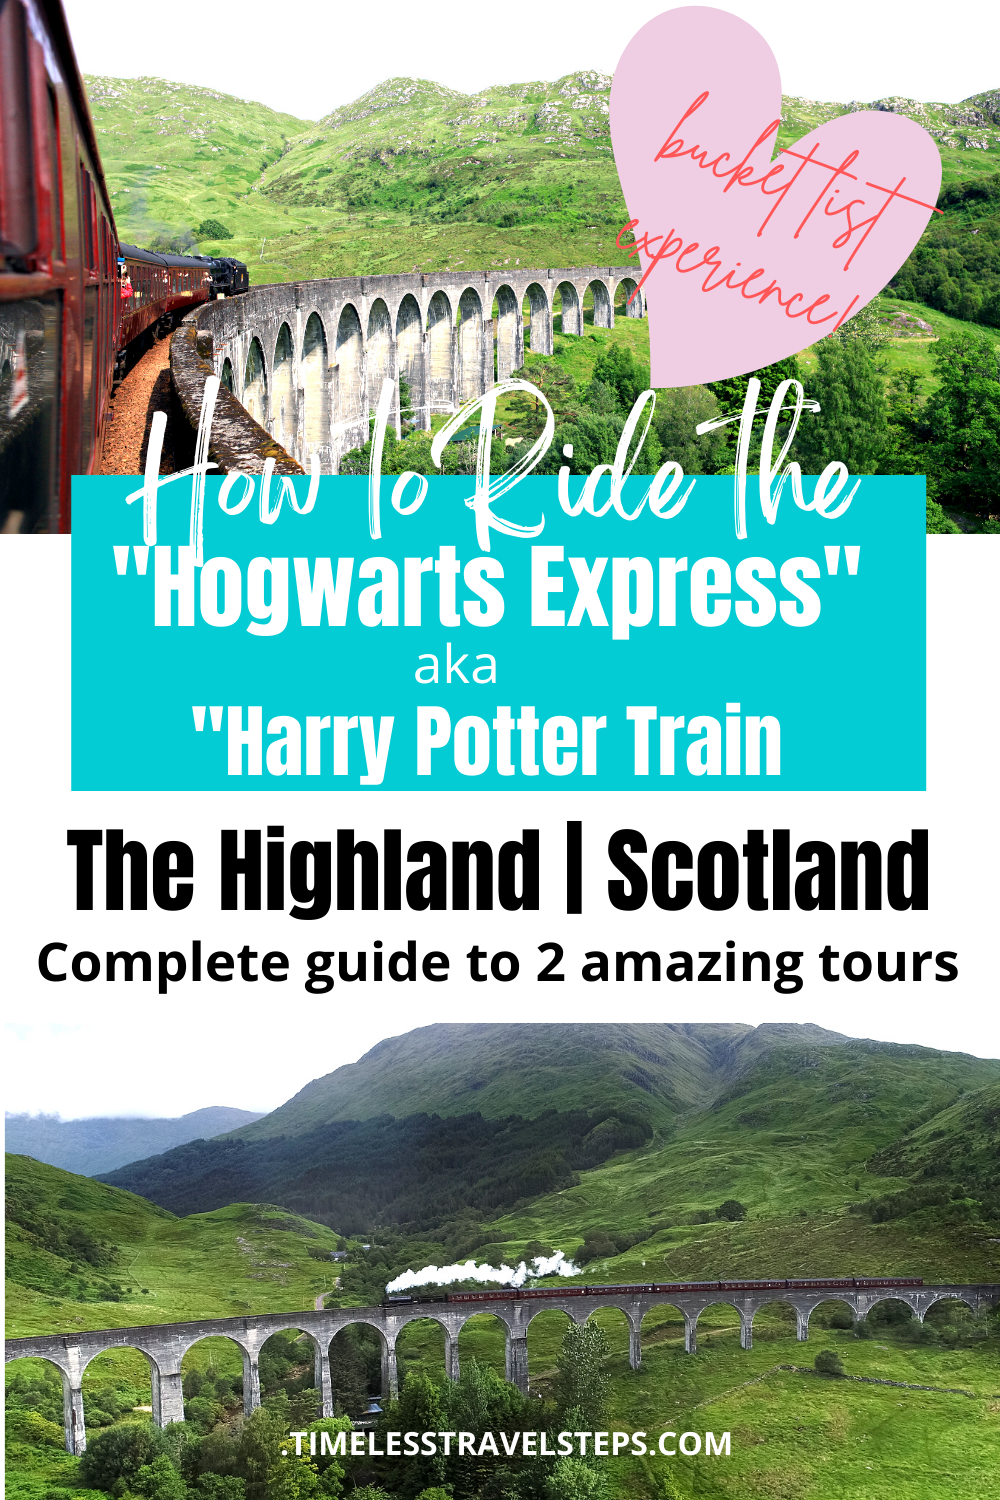 The Scottish Highland Tours | Scotland tours | Visit Scotland | Time travel in a Jacobite Steam Train | Ways to explore the Scottish Highland | Scotland | The Highland | Scenic Train Journeys | Mountains, Lochs and glens of Scotland | Ben Nevis | Day trips from Inverness | Day trips from Edinburgh | Glenfinnan Viaduct | Steam Train | Scotland Train Journey | Britain's most scenic train journeys | Best things to do in Scotland | Best tours in Scotland | Visit Scotland | Escape to the Highland. via @GGeorgina_timelesstravelsteps/